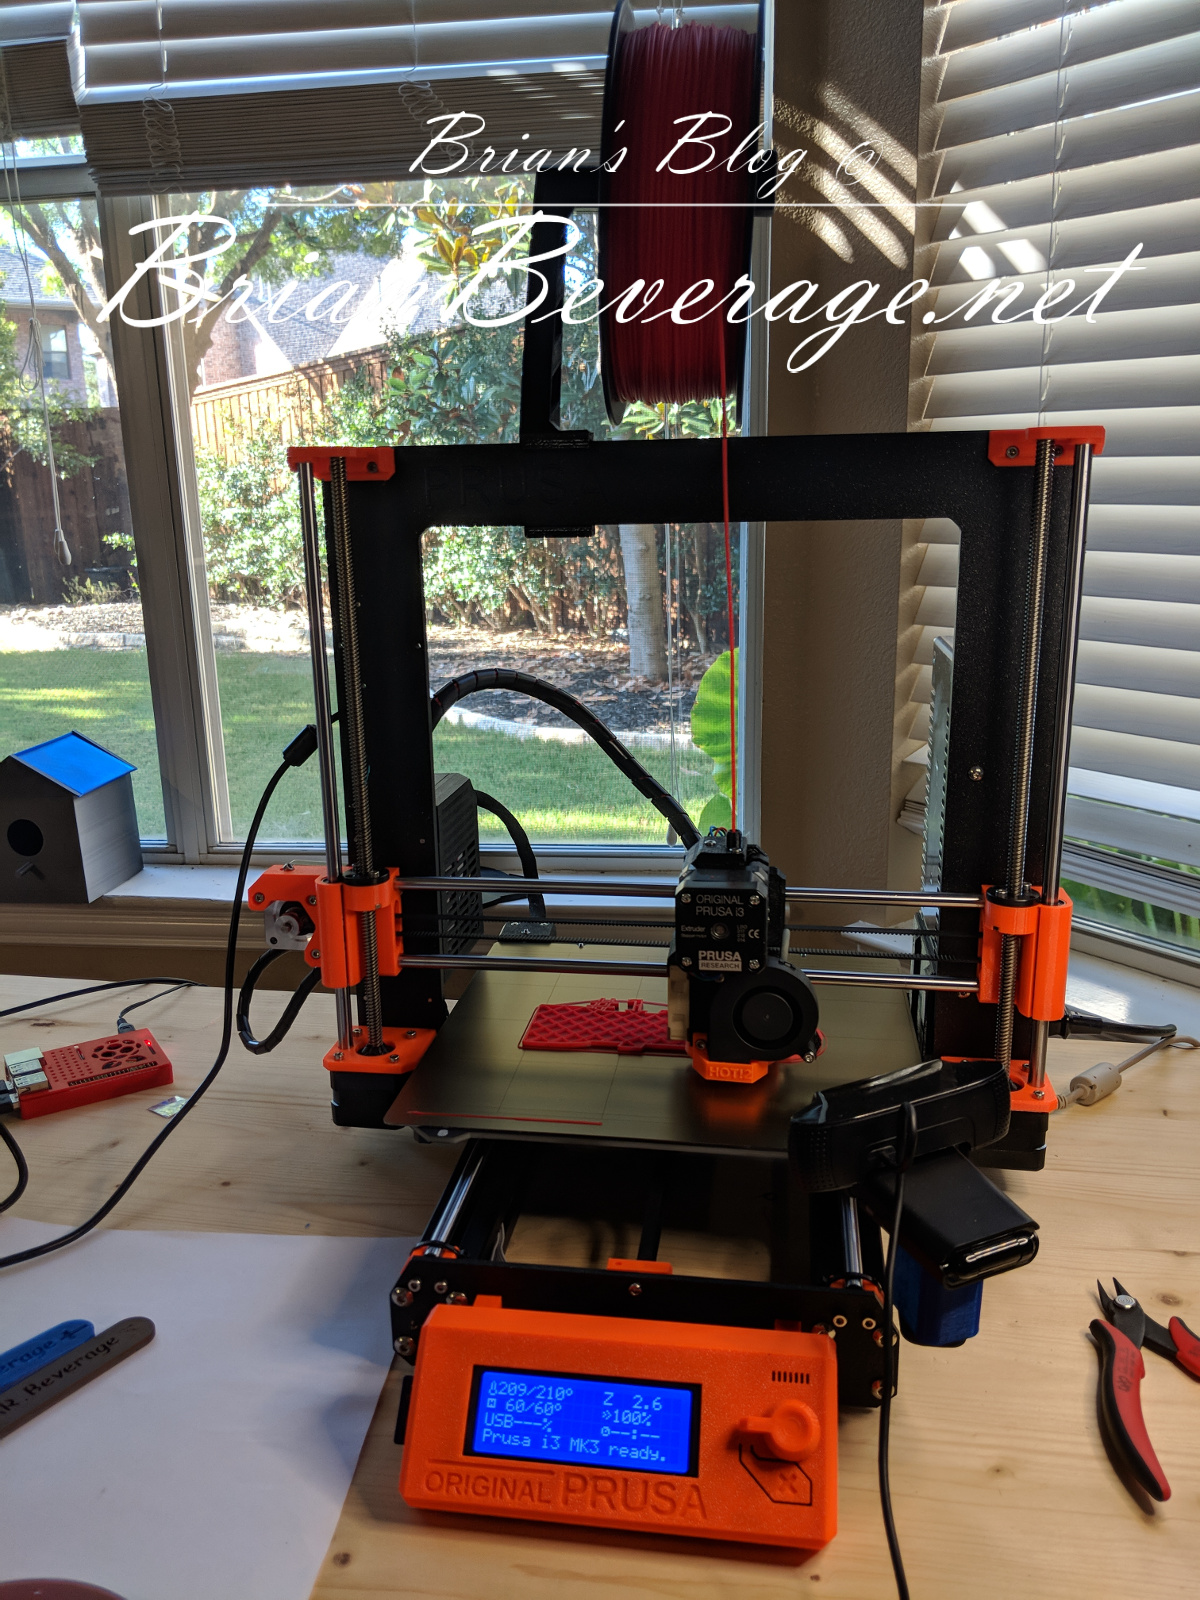 My 3D printing setup the tools, materials and software I use